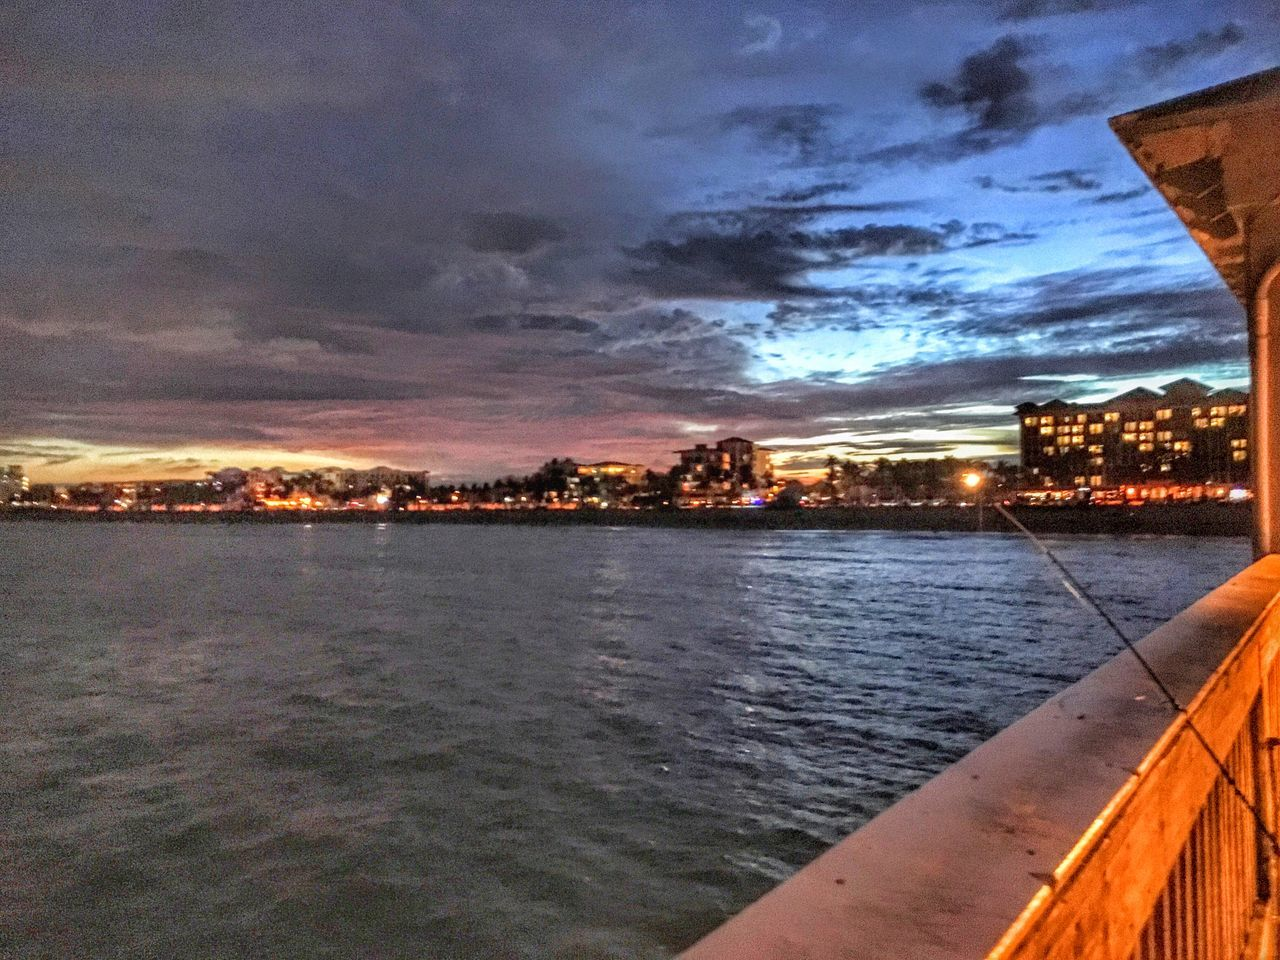 sky, cloud - sky, architecture, built structure, building exterior, water, sunset, no people, city, outdoors, river, nature, cityscape, scenics, beauty in nature, skyscraper, day, nautical vessel